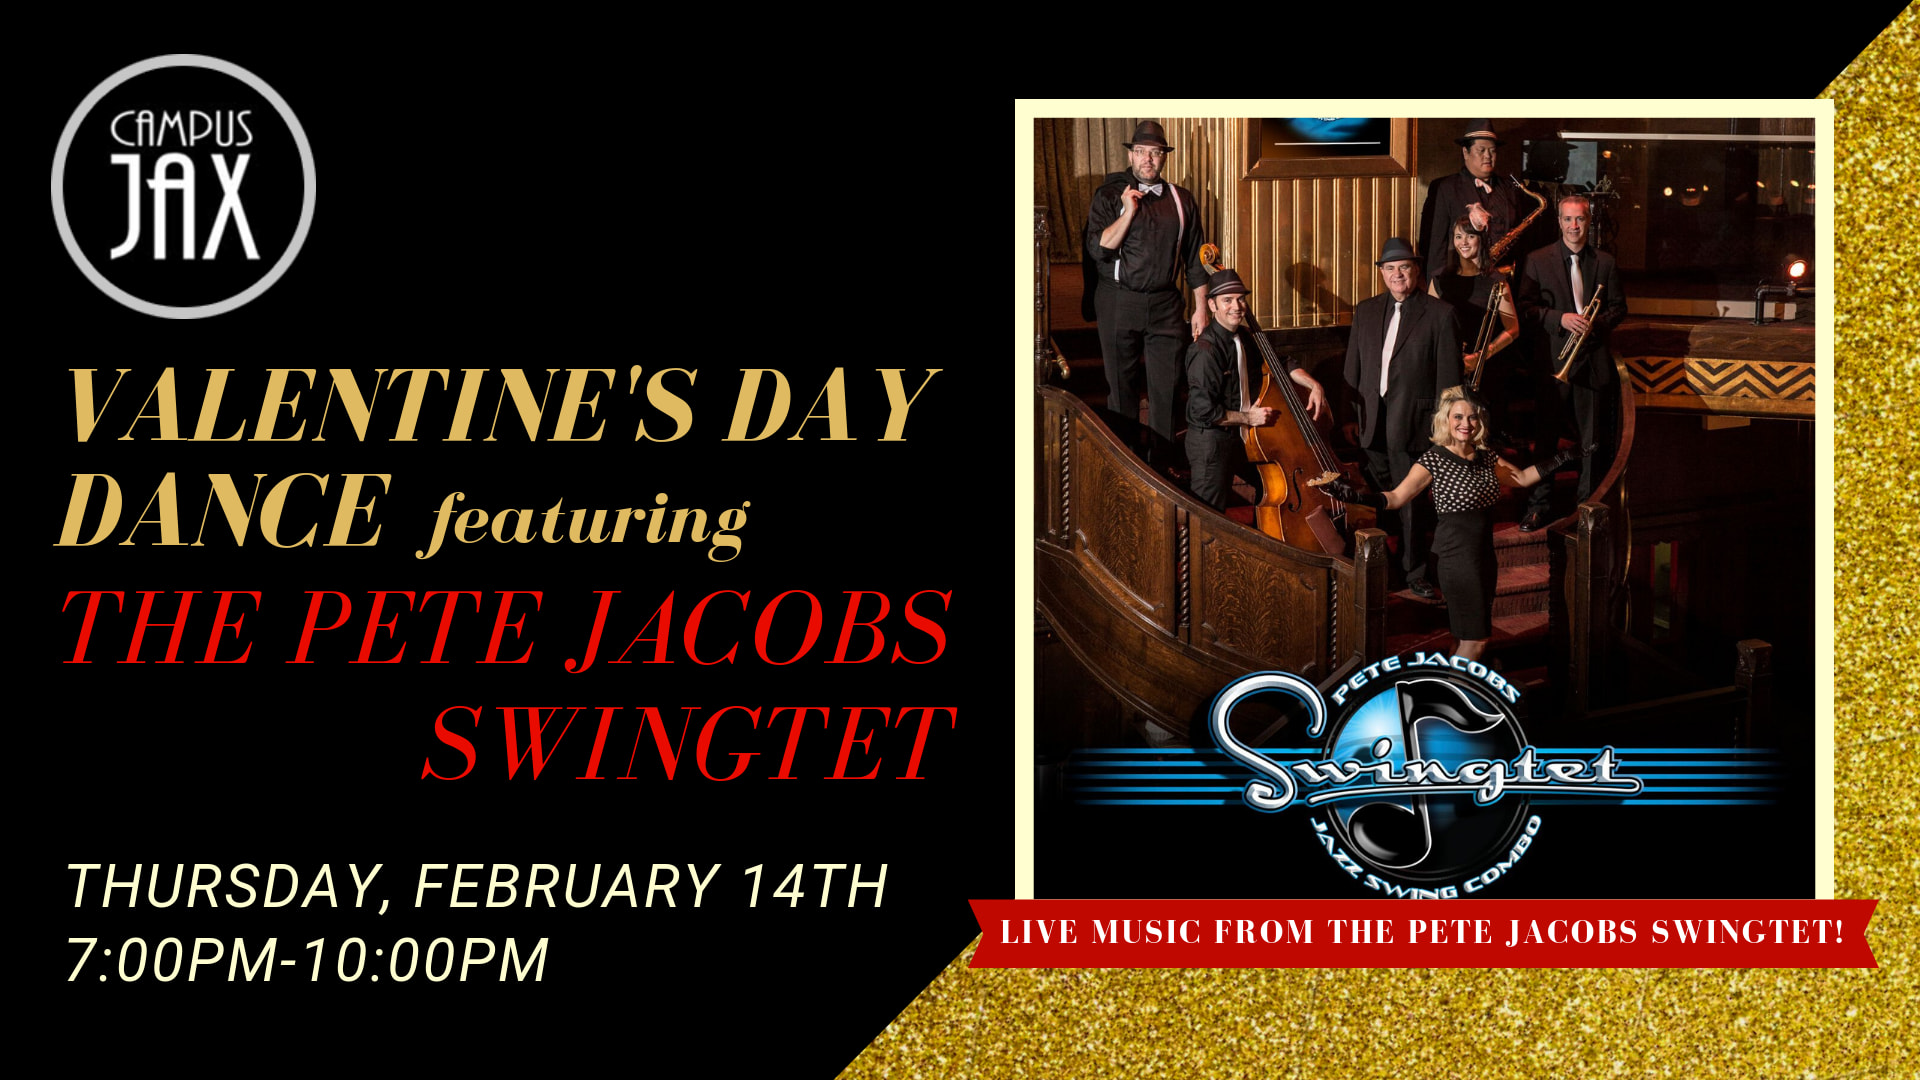 February 14 | VALENTINE'S DANCE with THE PETE JACOBS SWINGTET